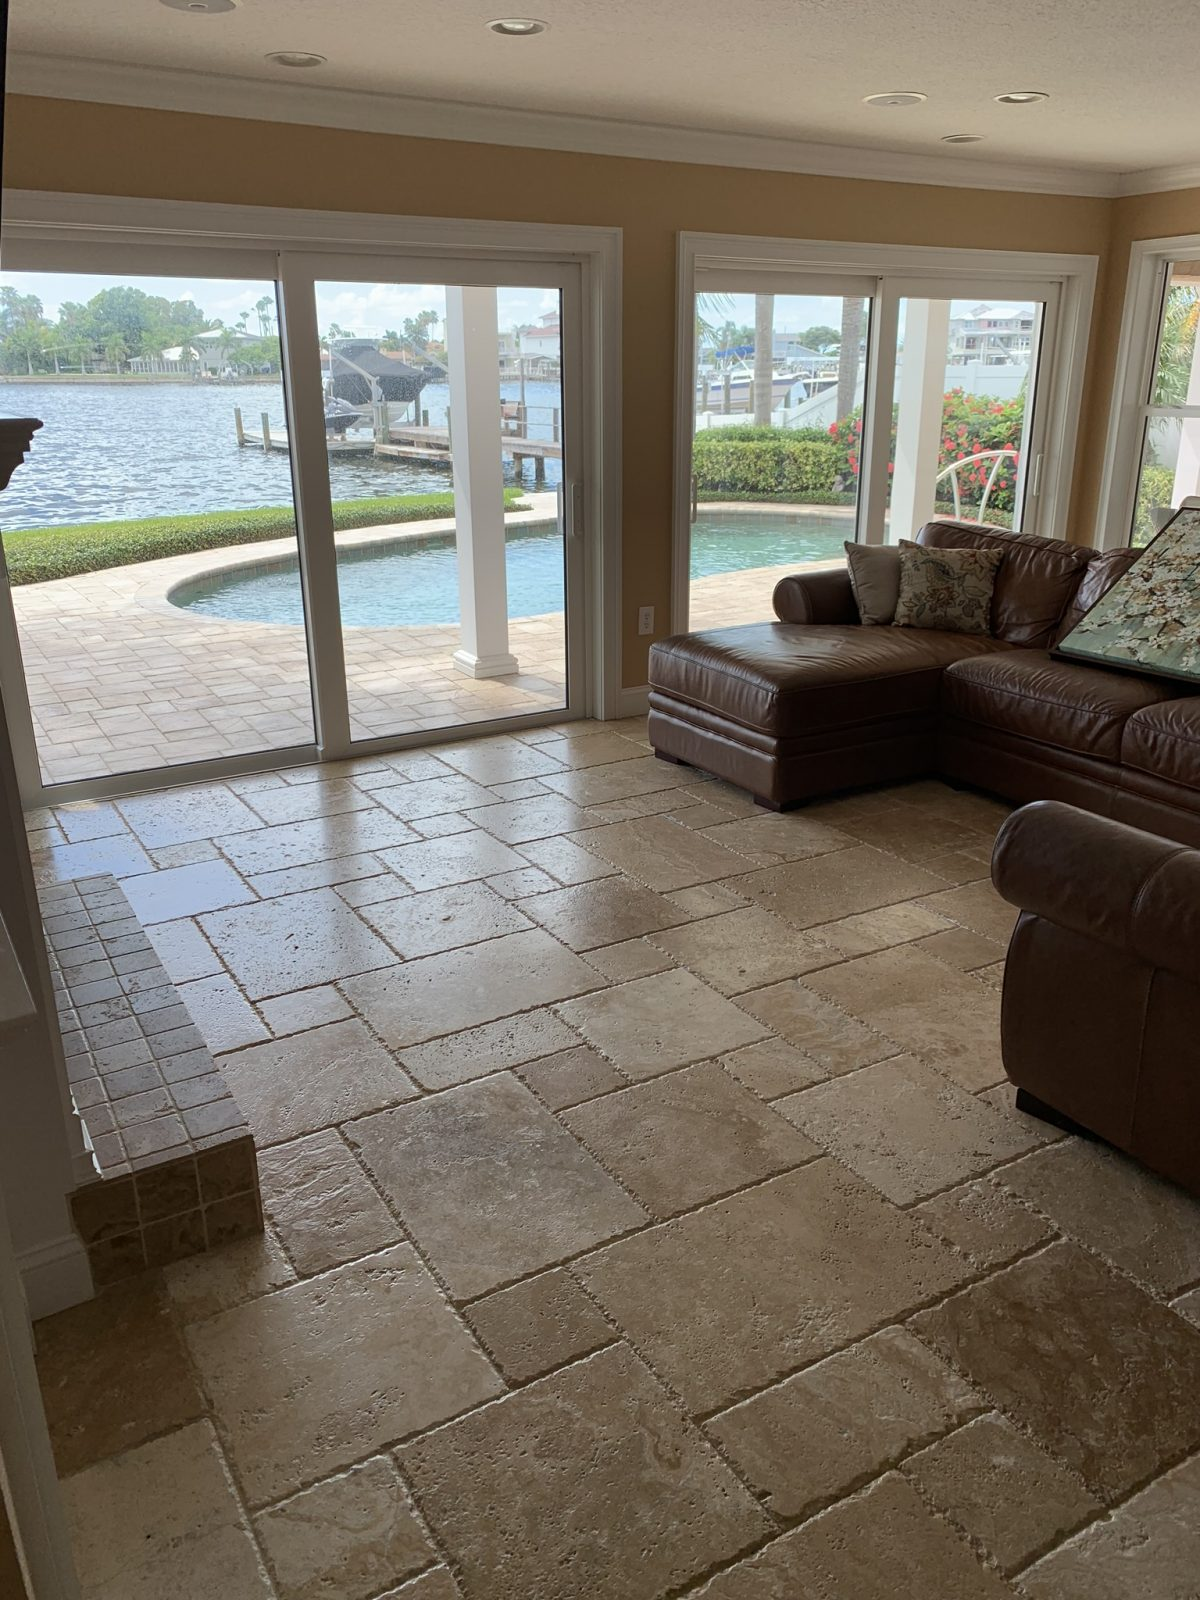 Professional Tile & Grout Cleaning Oldsmar Florida by Howards Cleaning Service